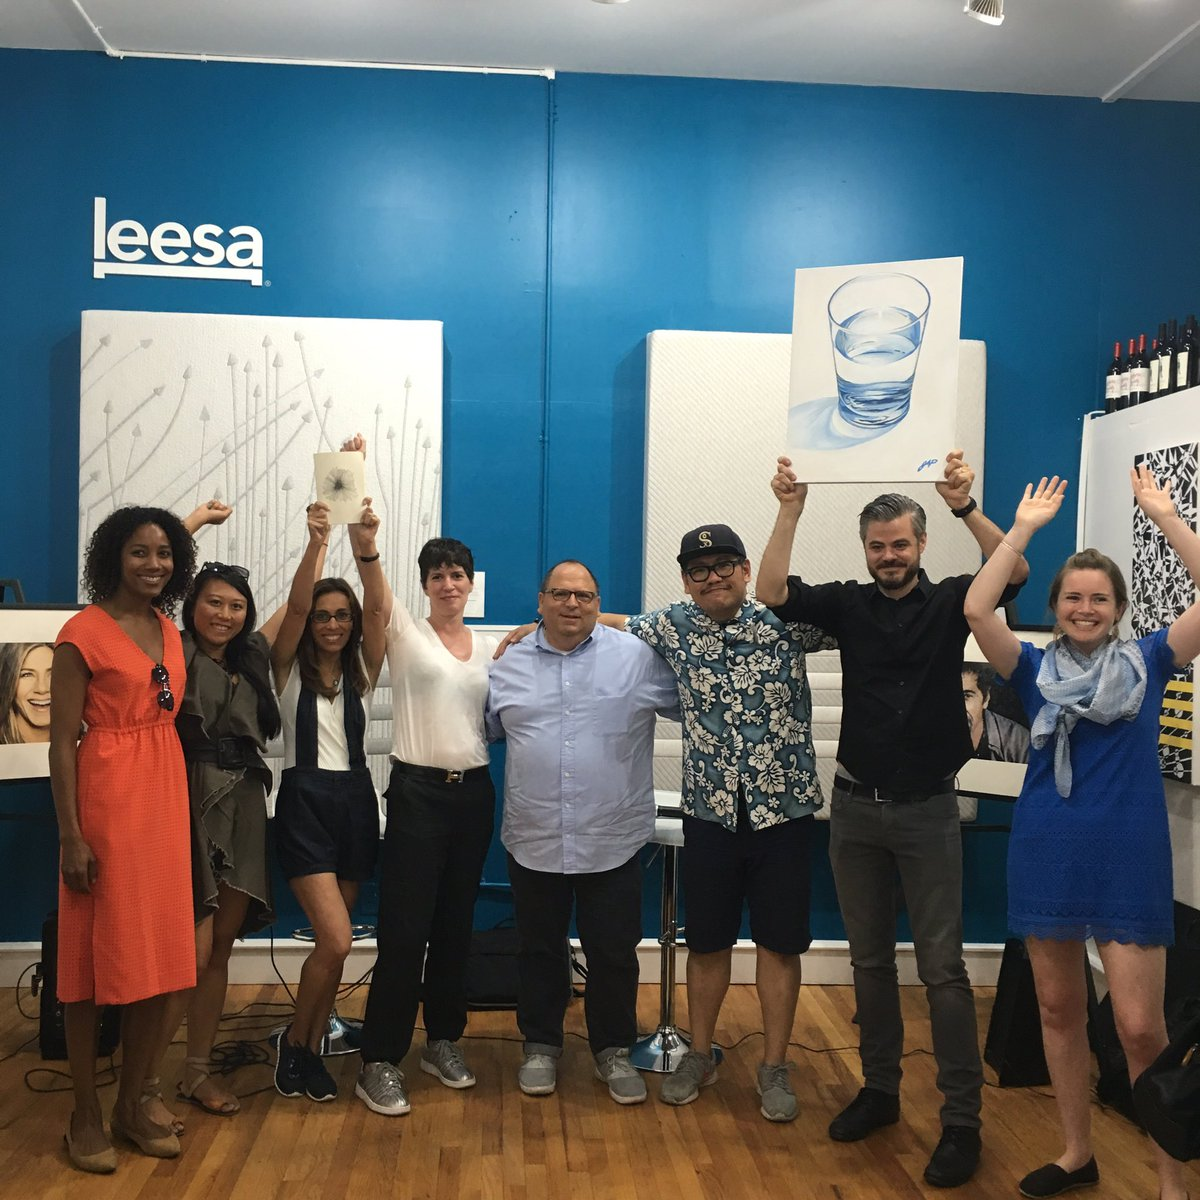 An #artlifting morning at #leesadreamgallery w/ amazing founders of @leesasleep @charitywater @ArtLifting #giveback https://t.co/DVLGFfchSh